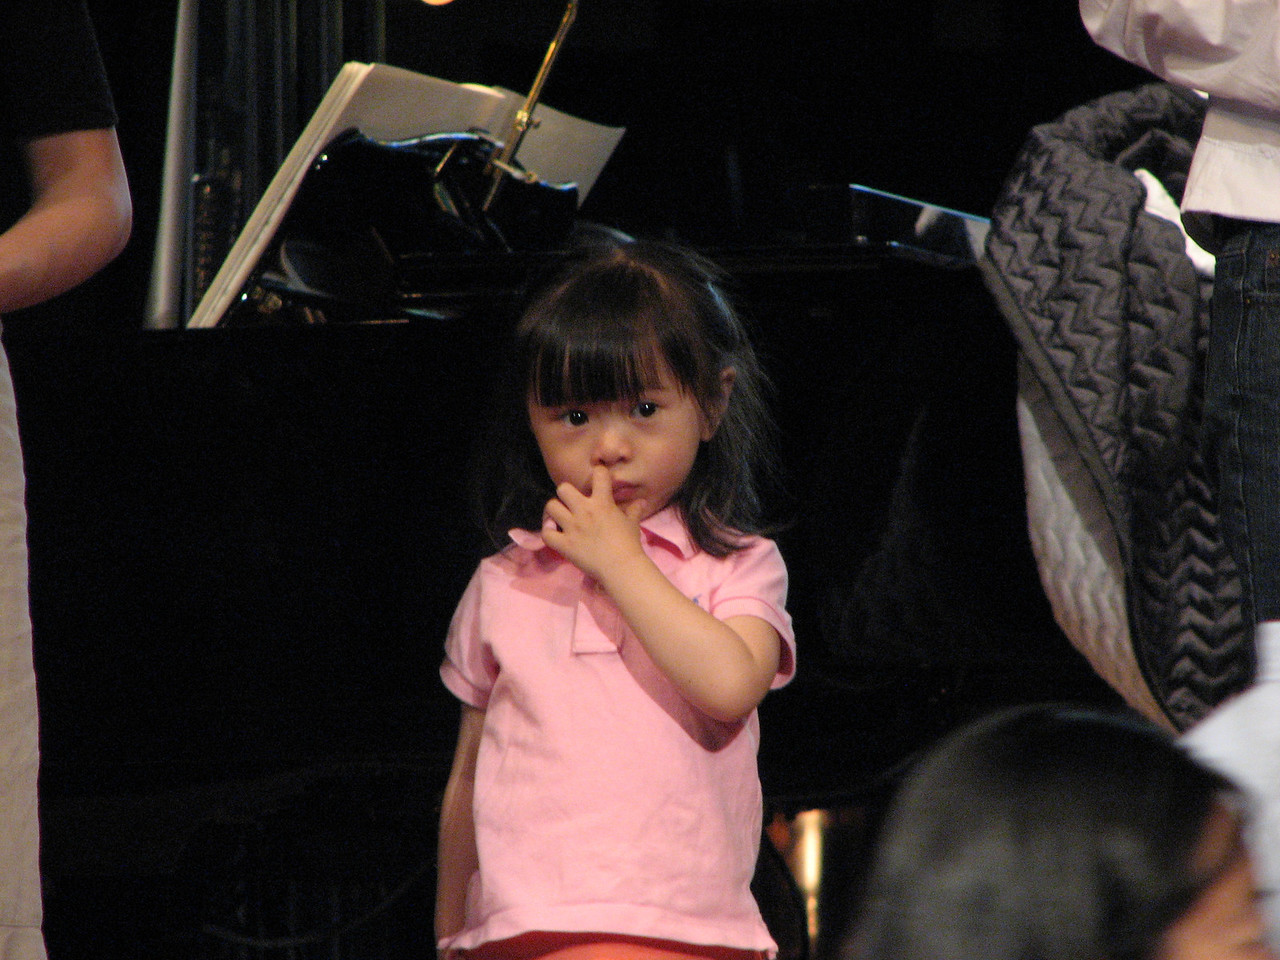 2007 05 18 Fri - Rehearsal - Flower girl Joelle Chien picking her nose